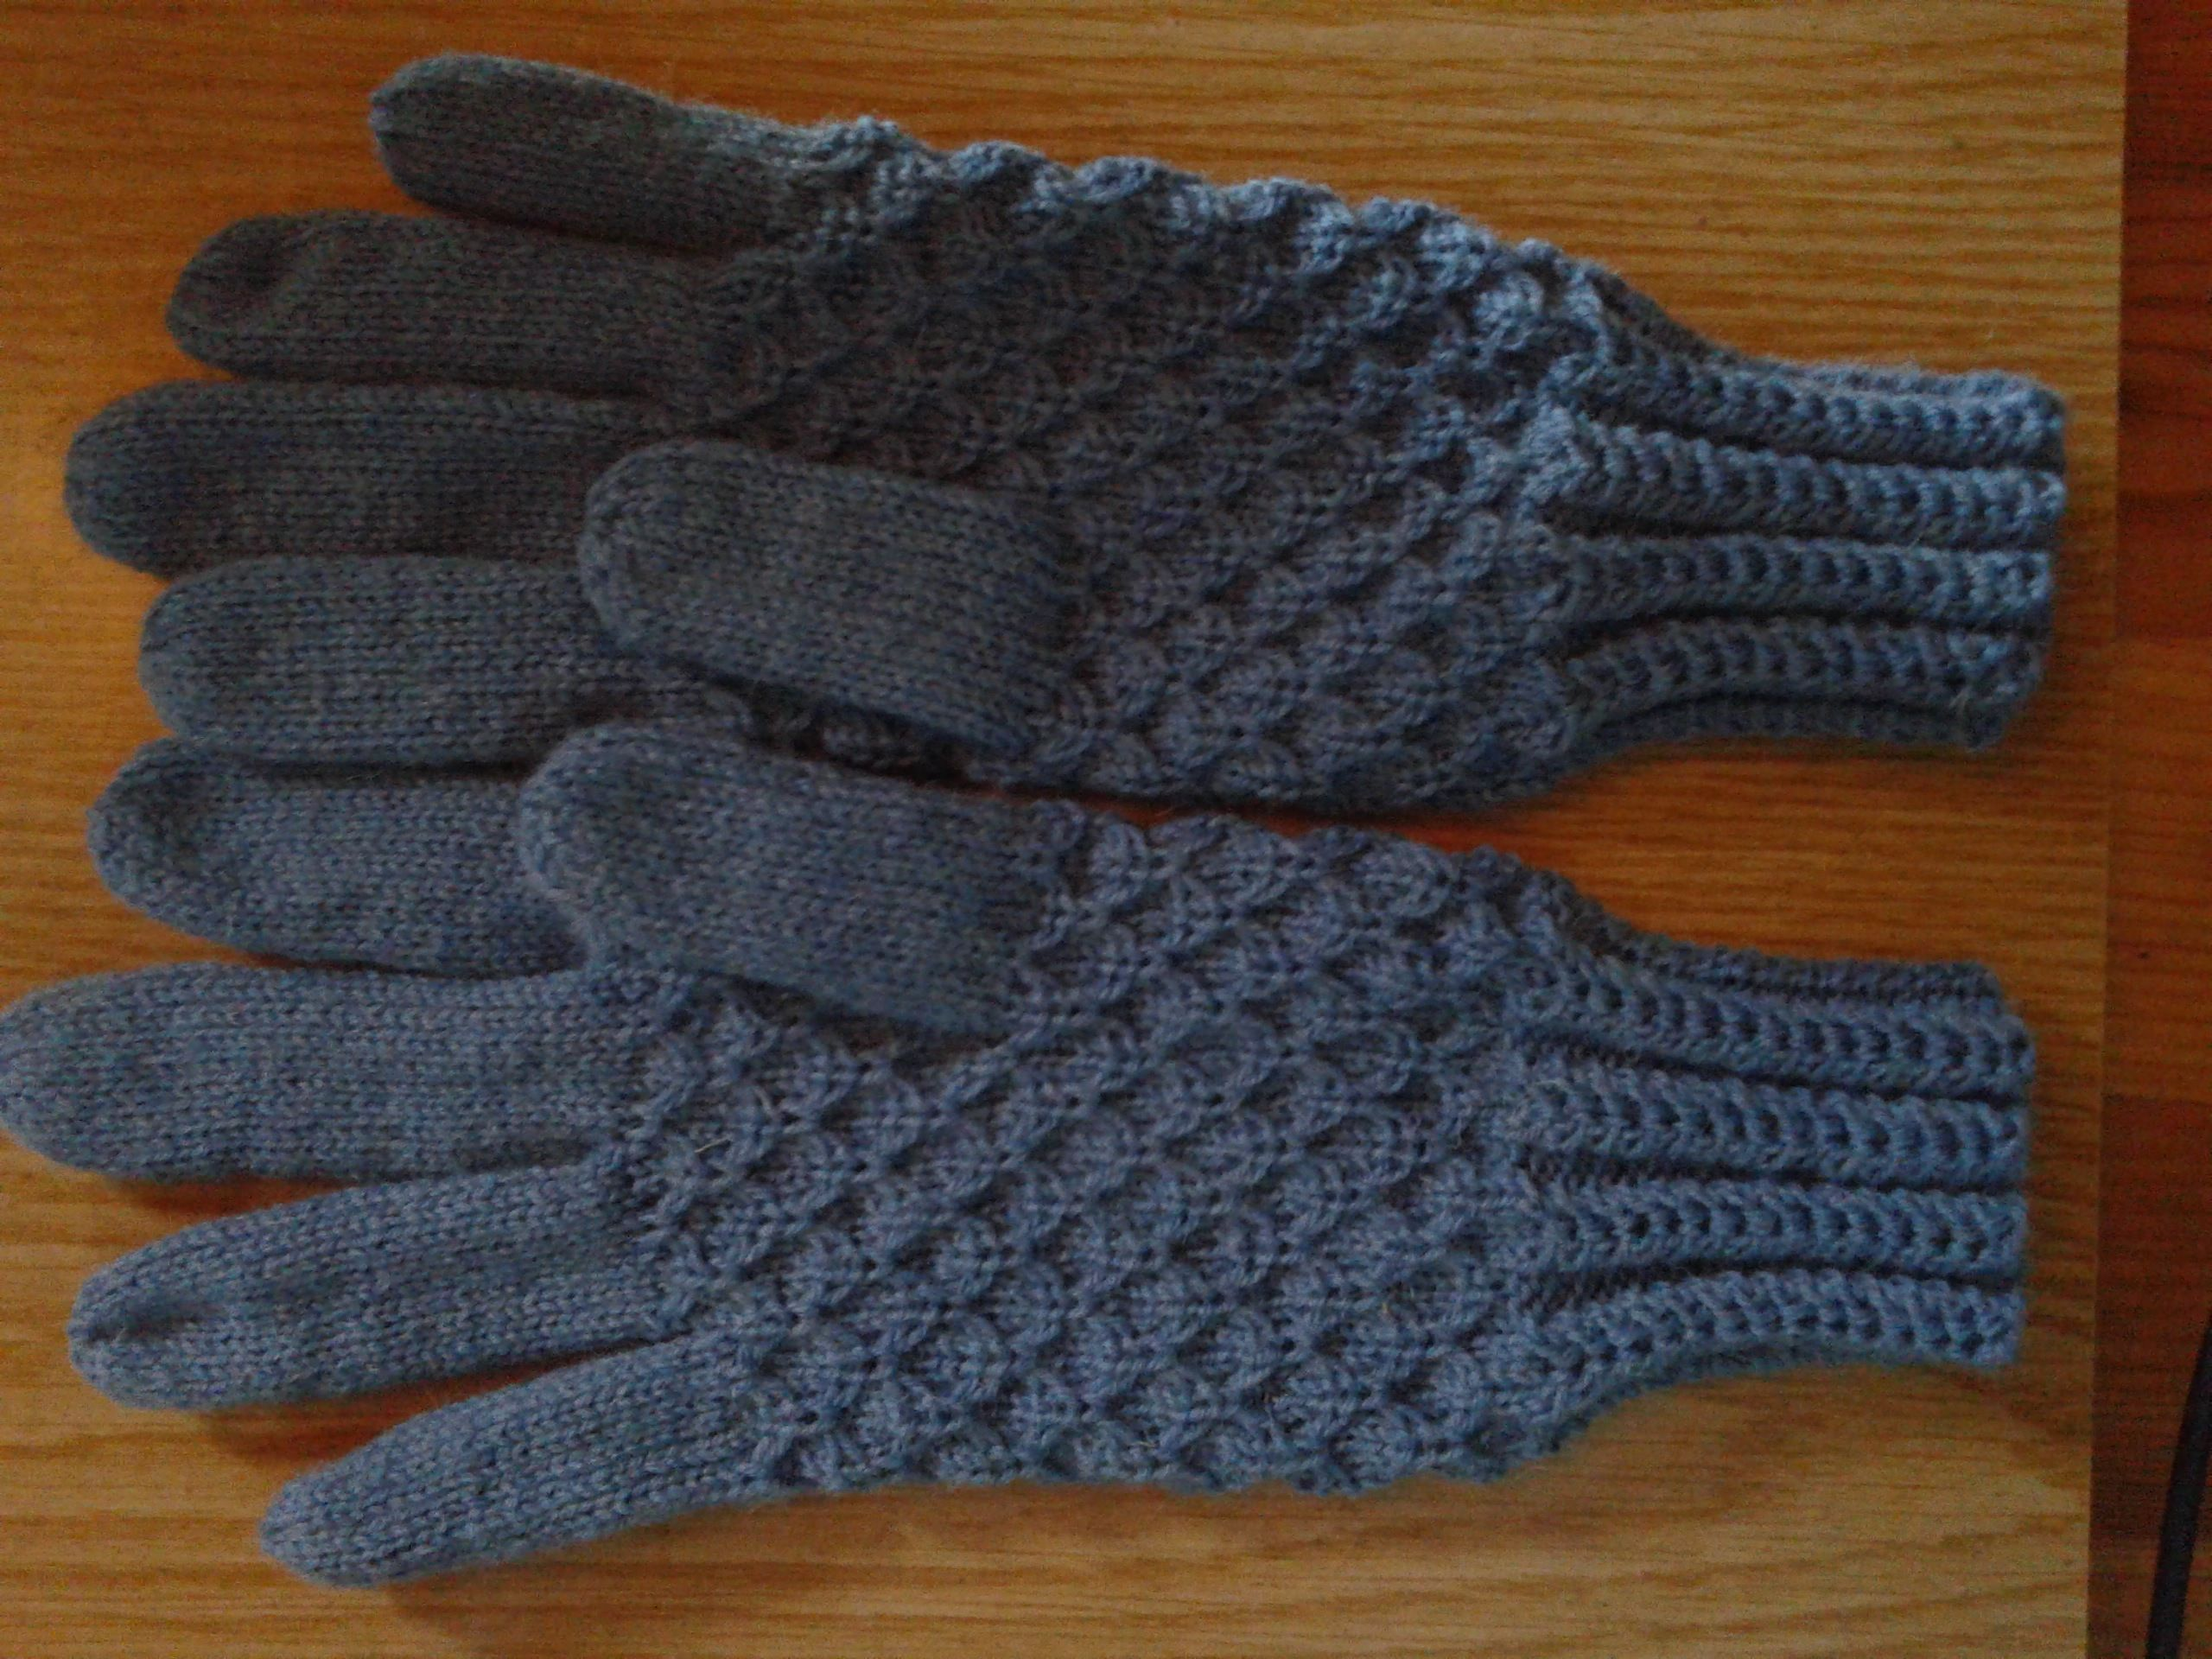 knitted gloves Free pattern http://www.ravelry.com/patterns/library/mock-honeycomb-gloves